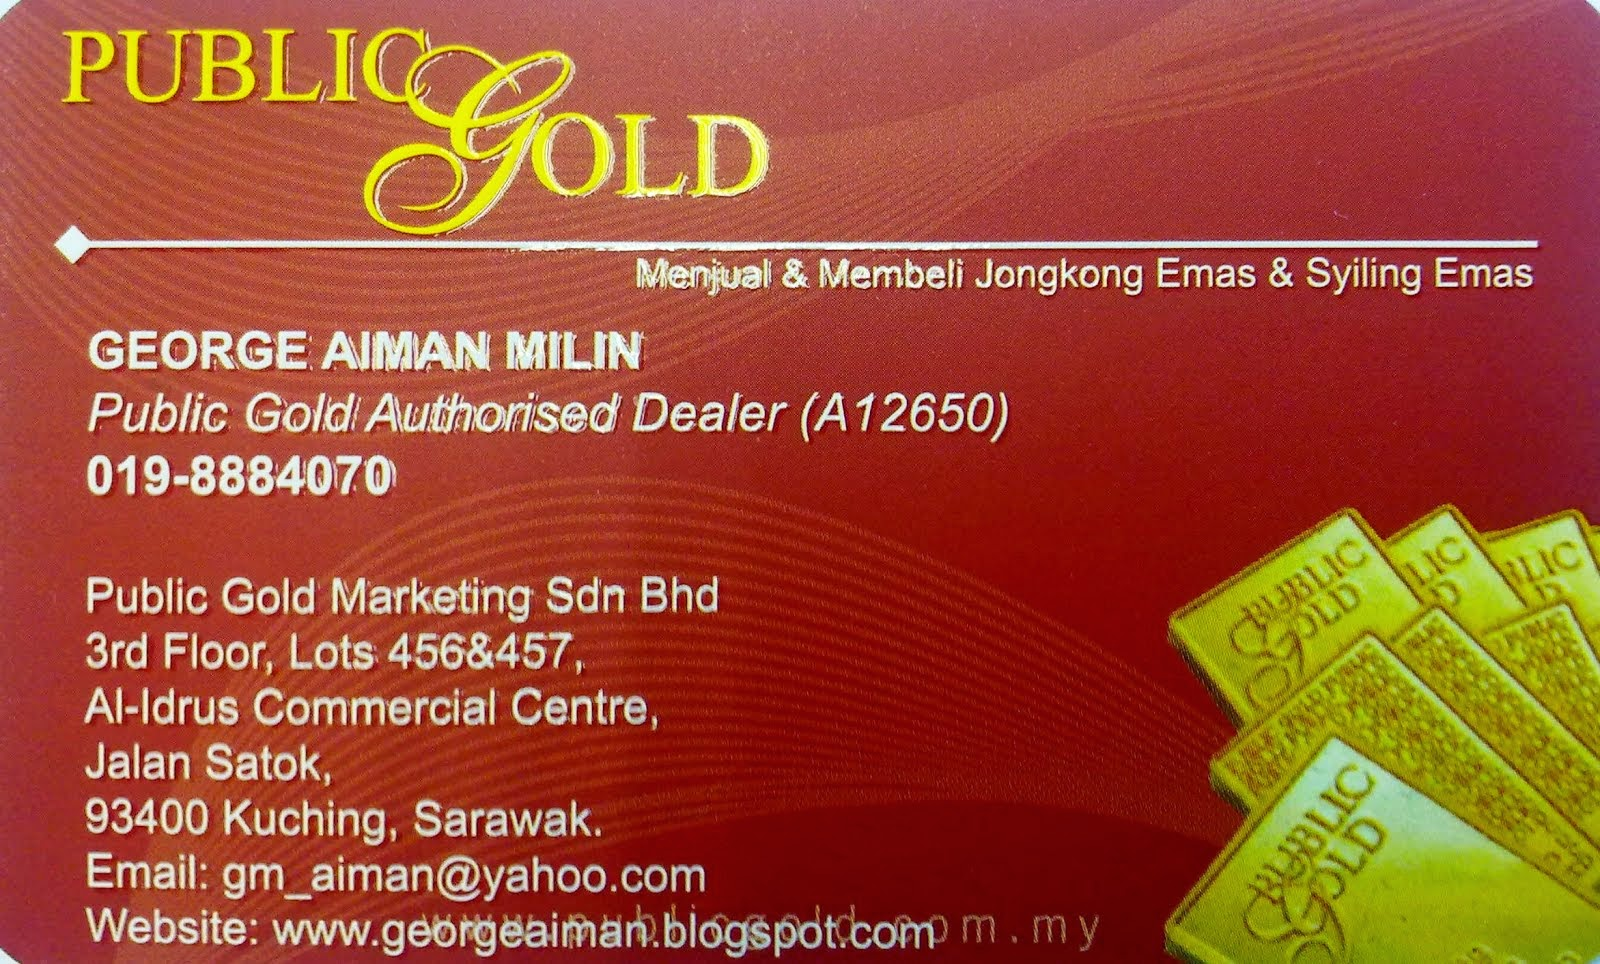 Name Card PB Gold